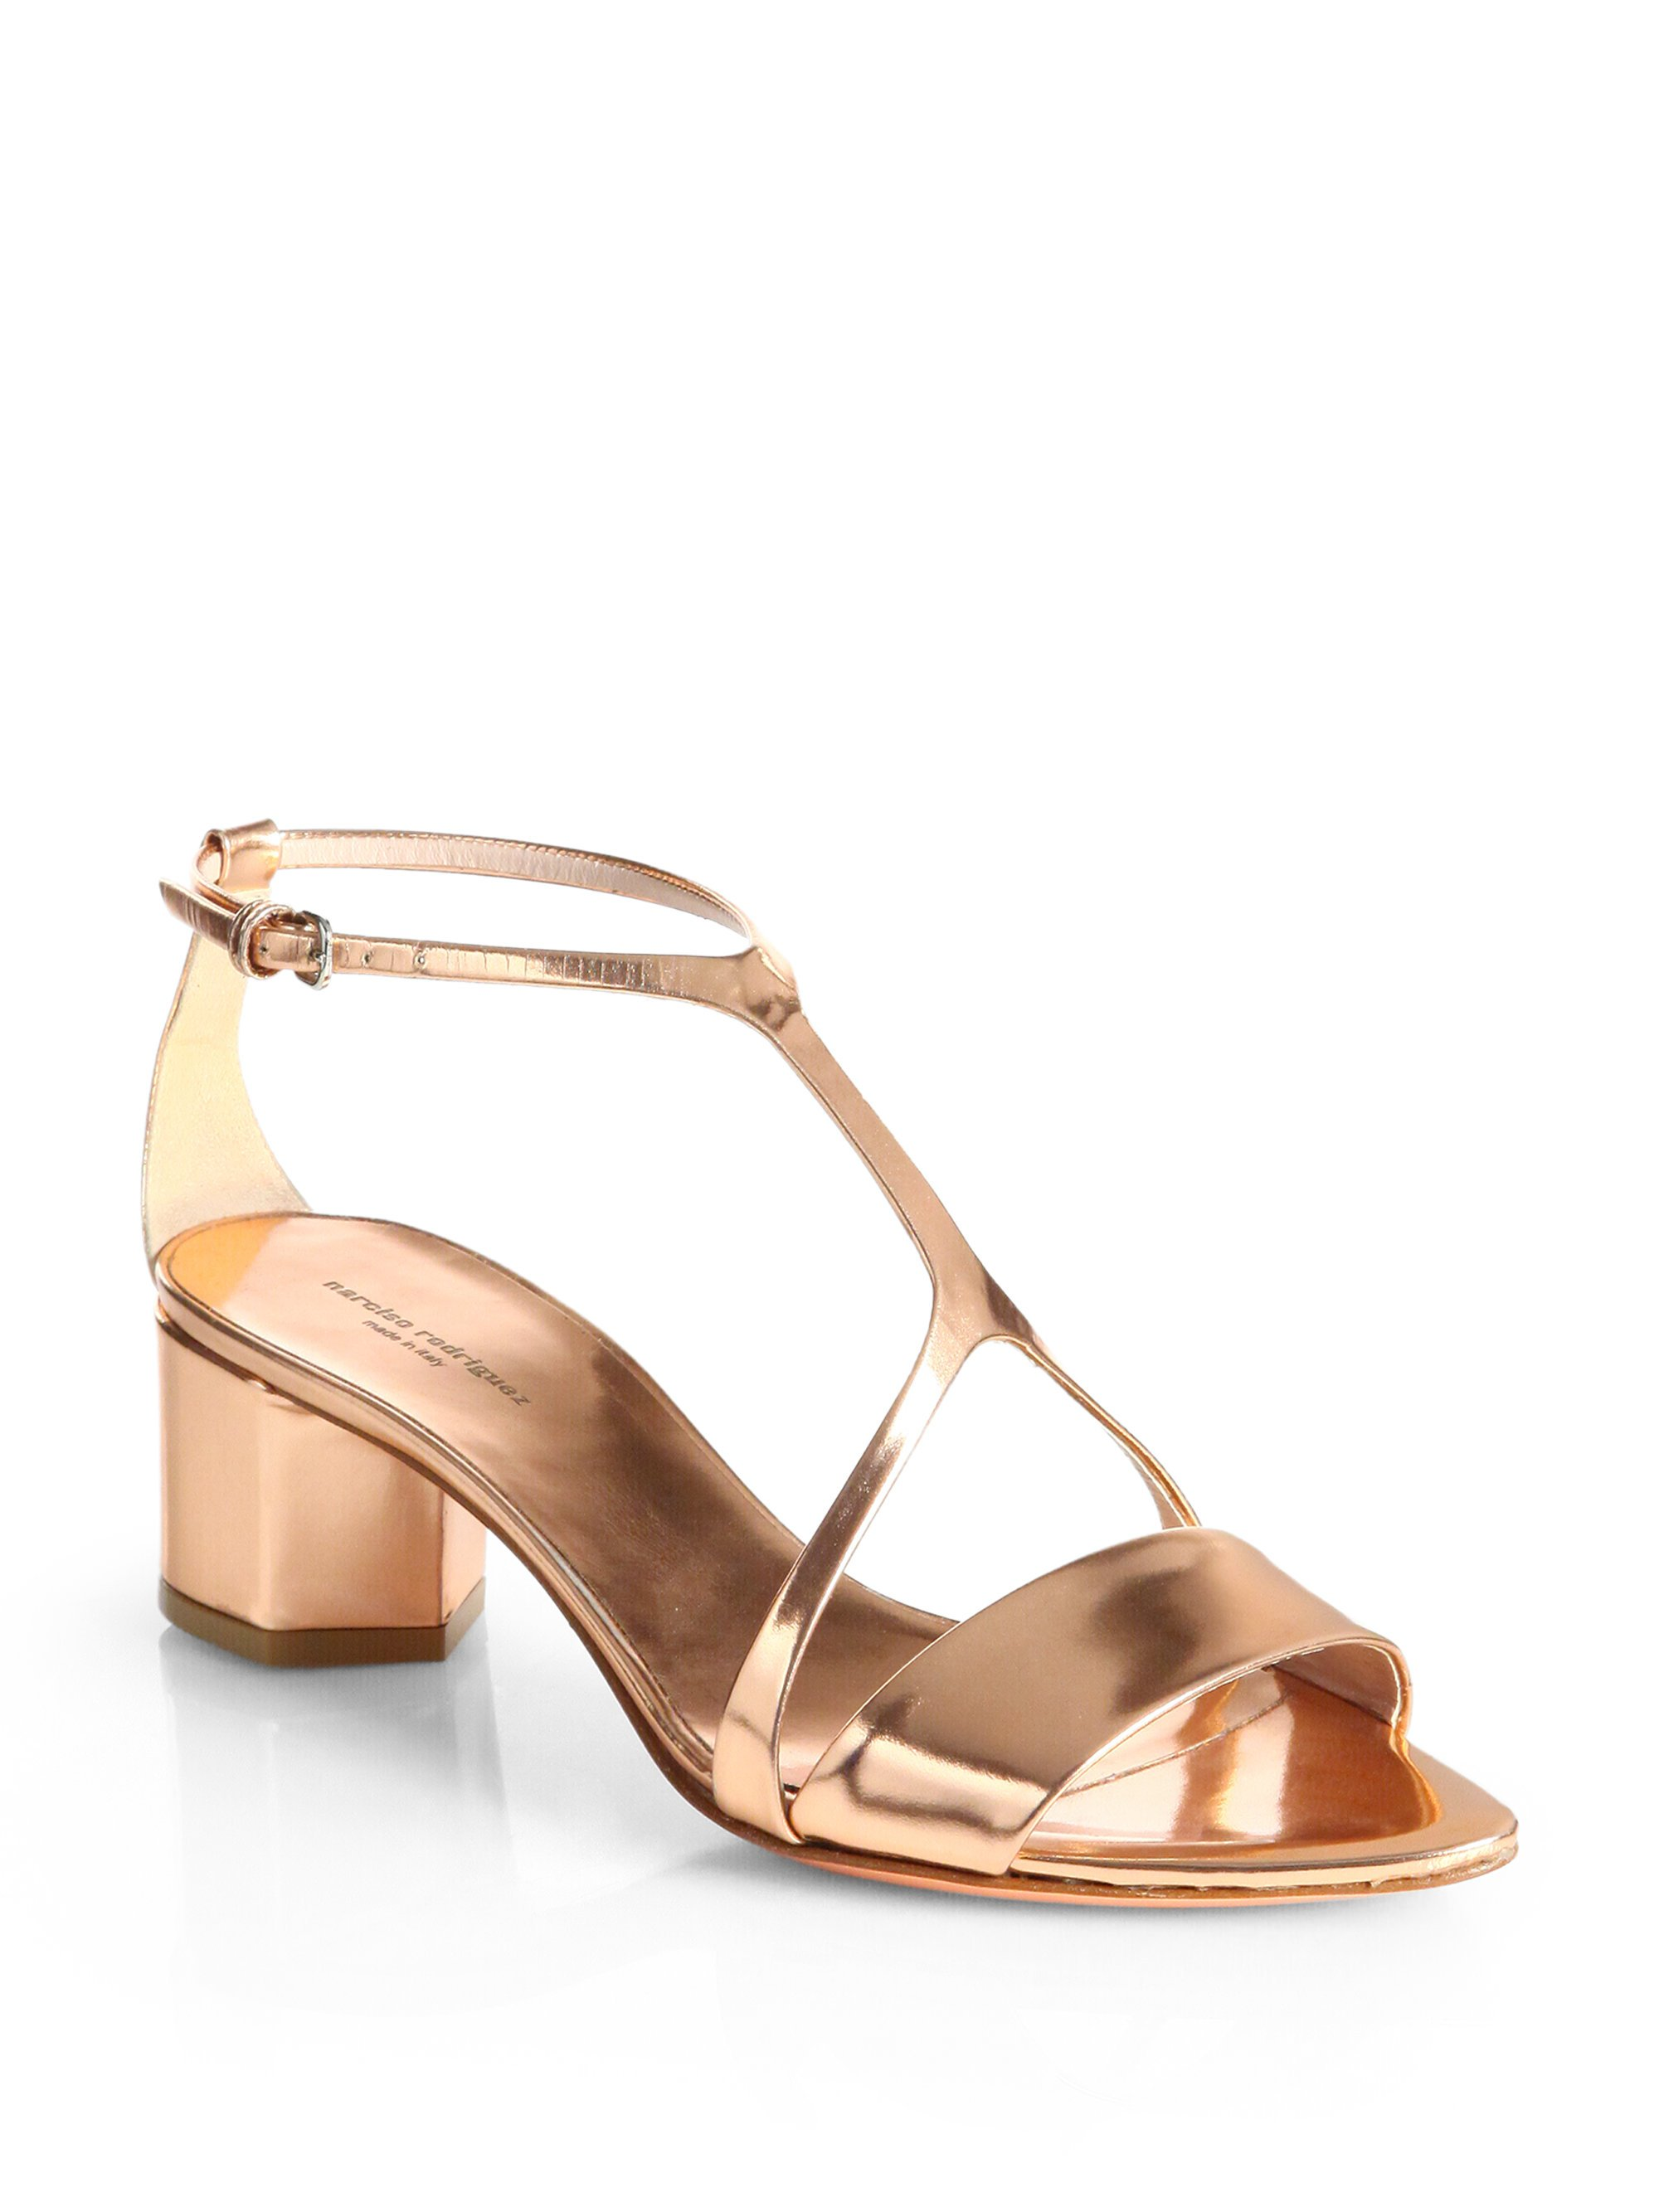 discount the cheapest discount fashionable Narciso Rodriguez Metallic Patent Leather Sandals discount deals visit cheap price shopping online free shipping 1XeeZl